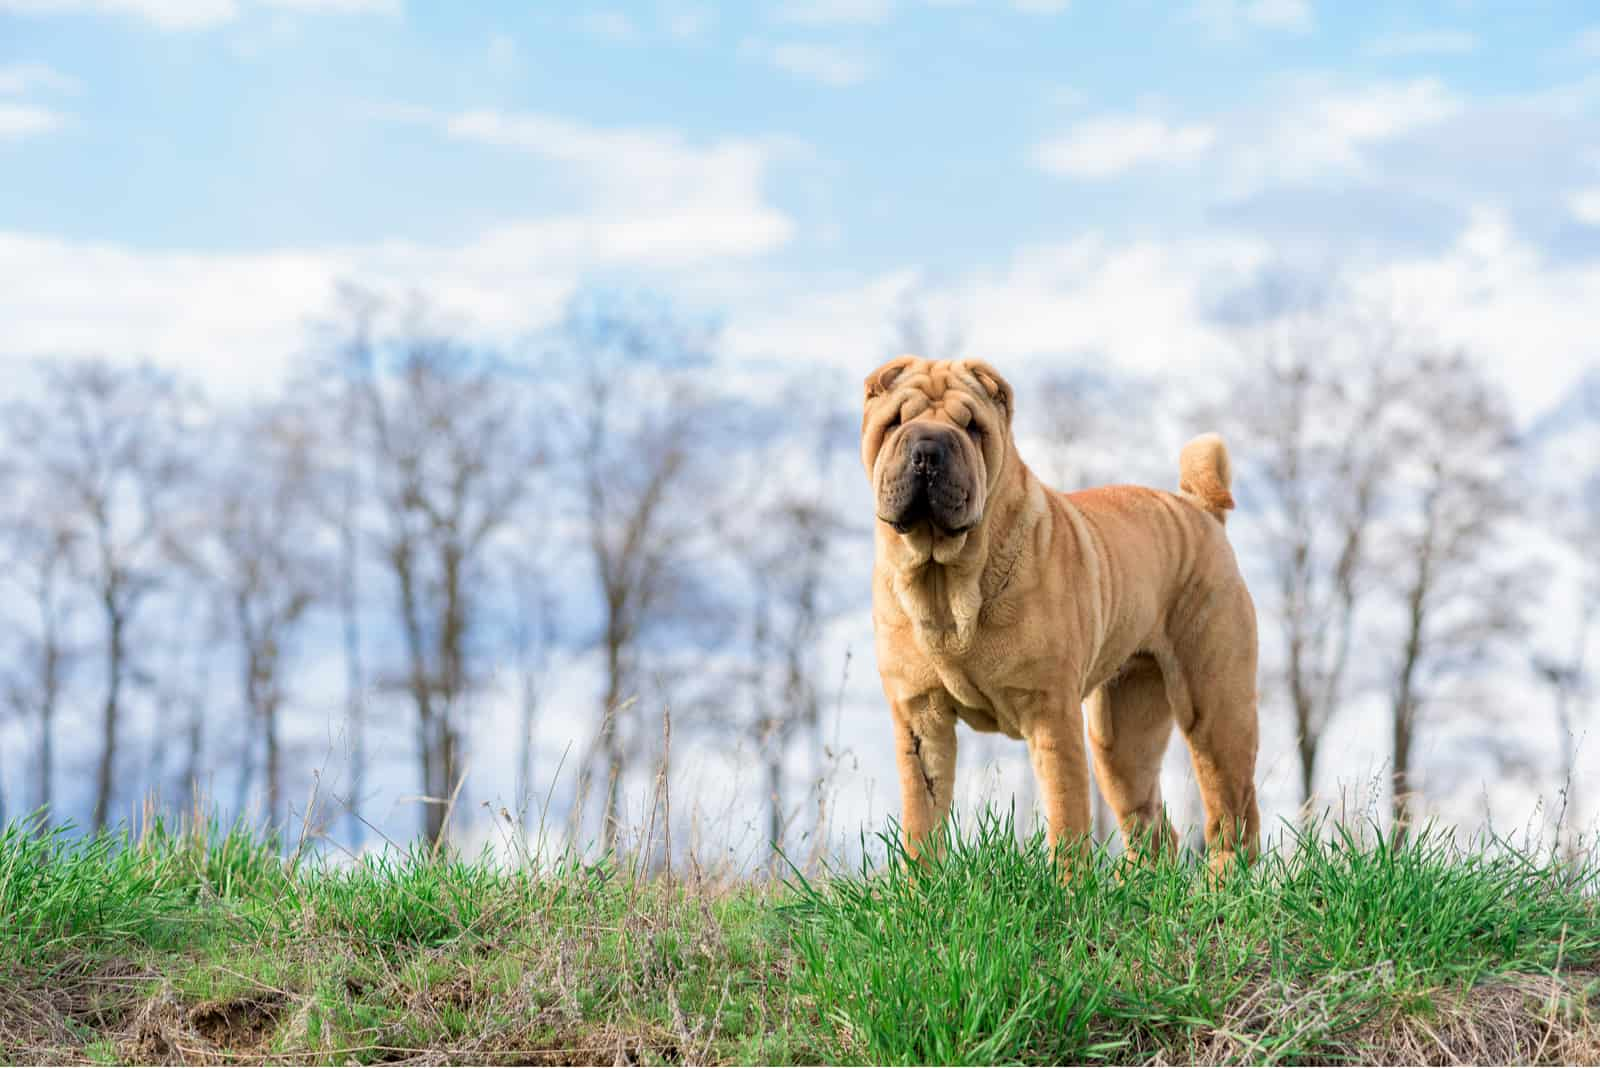 dog breed Shar Pei in nature